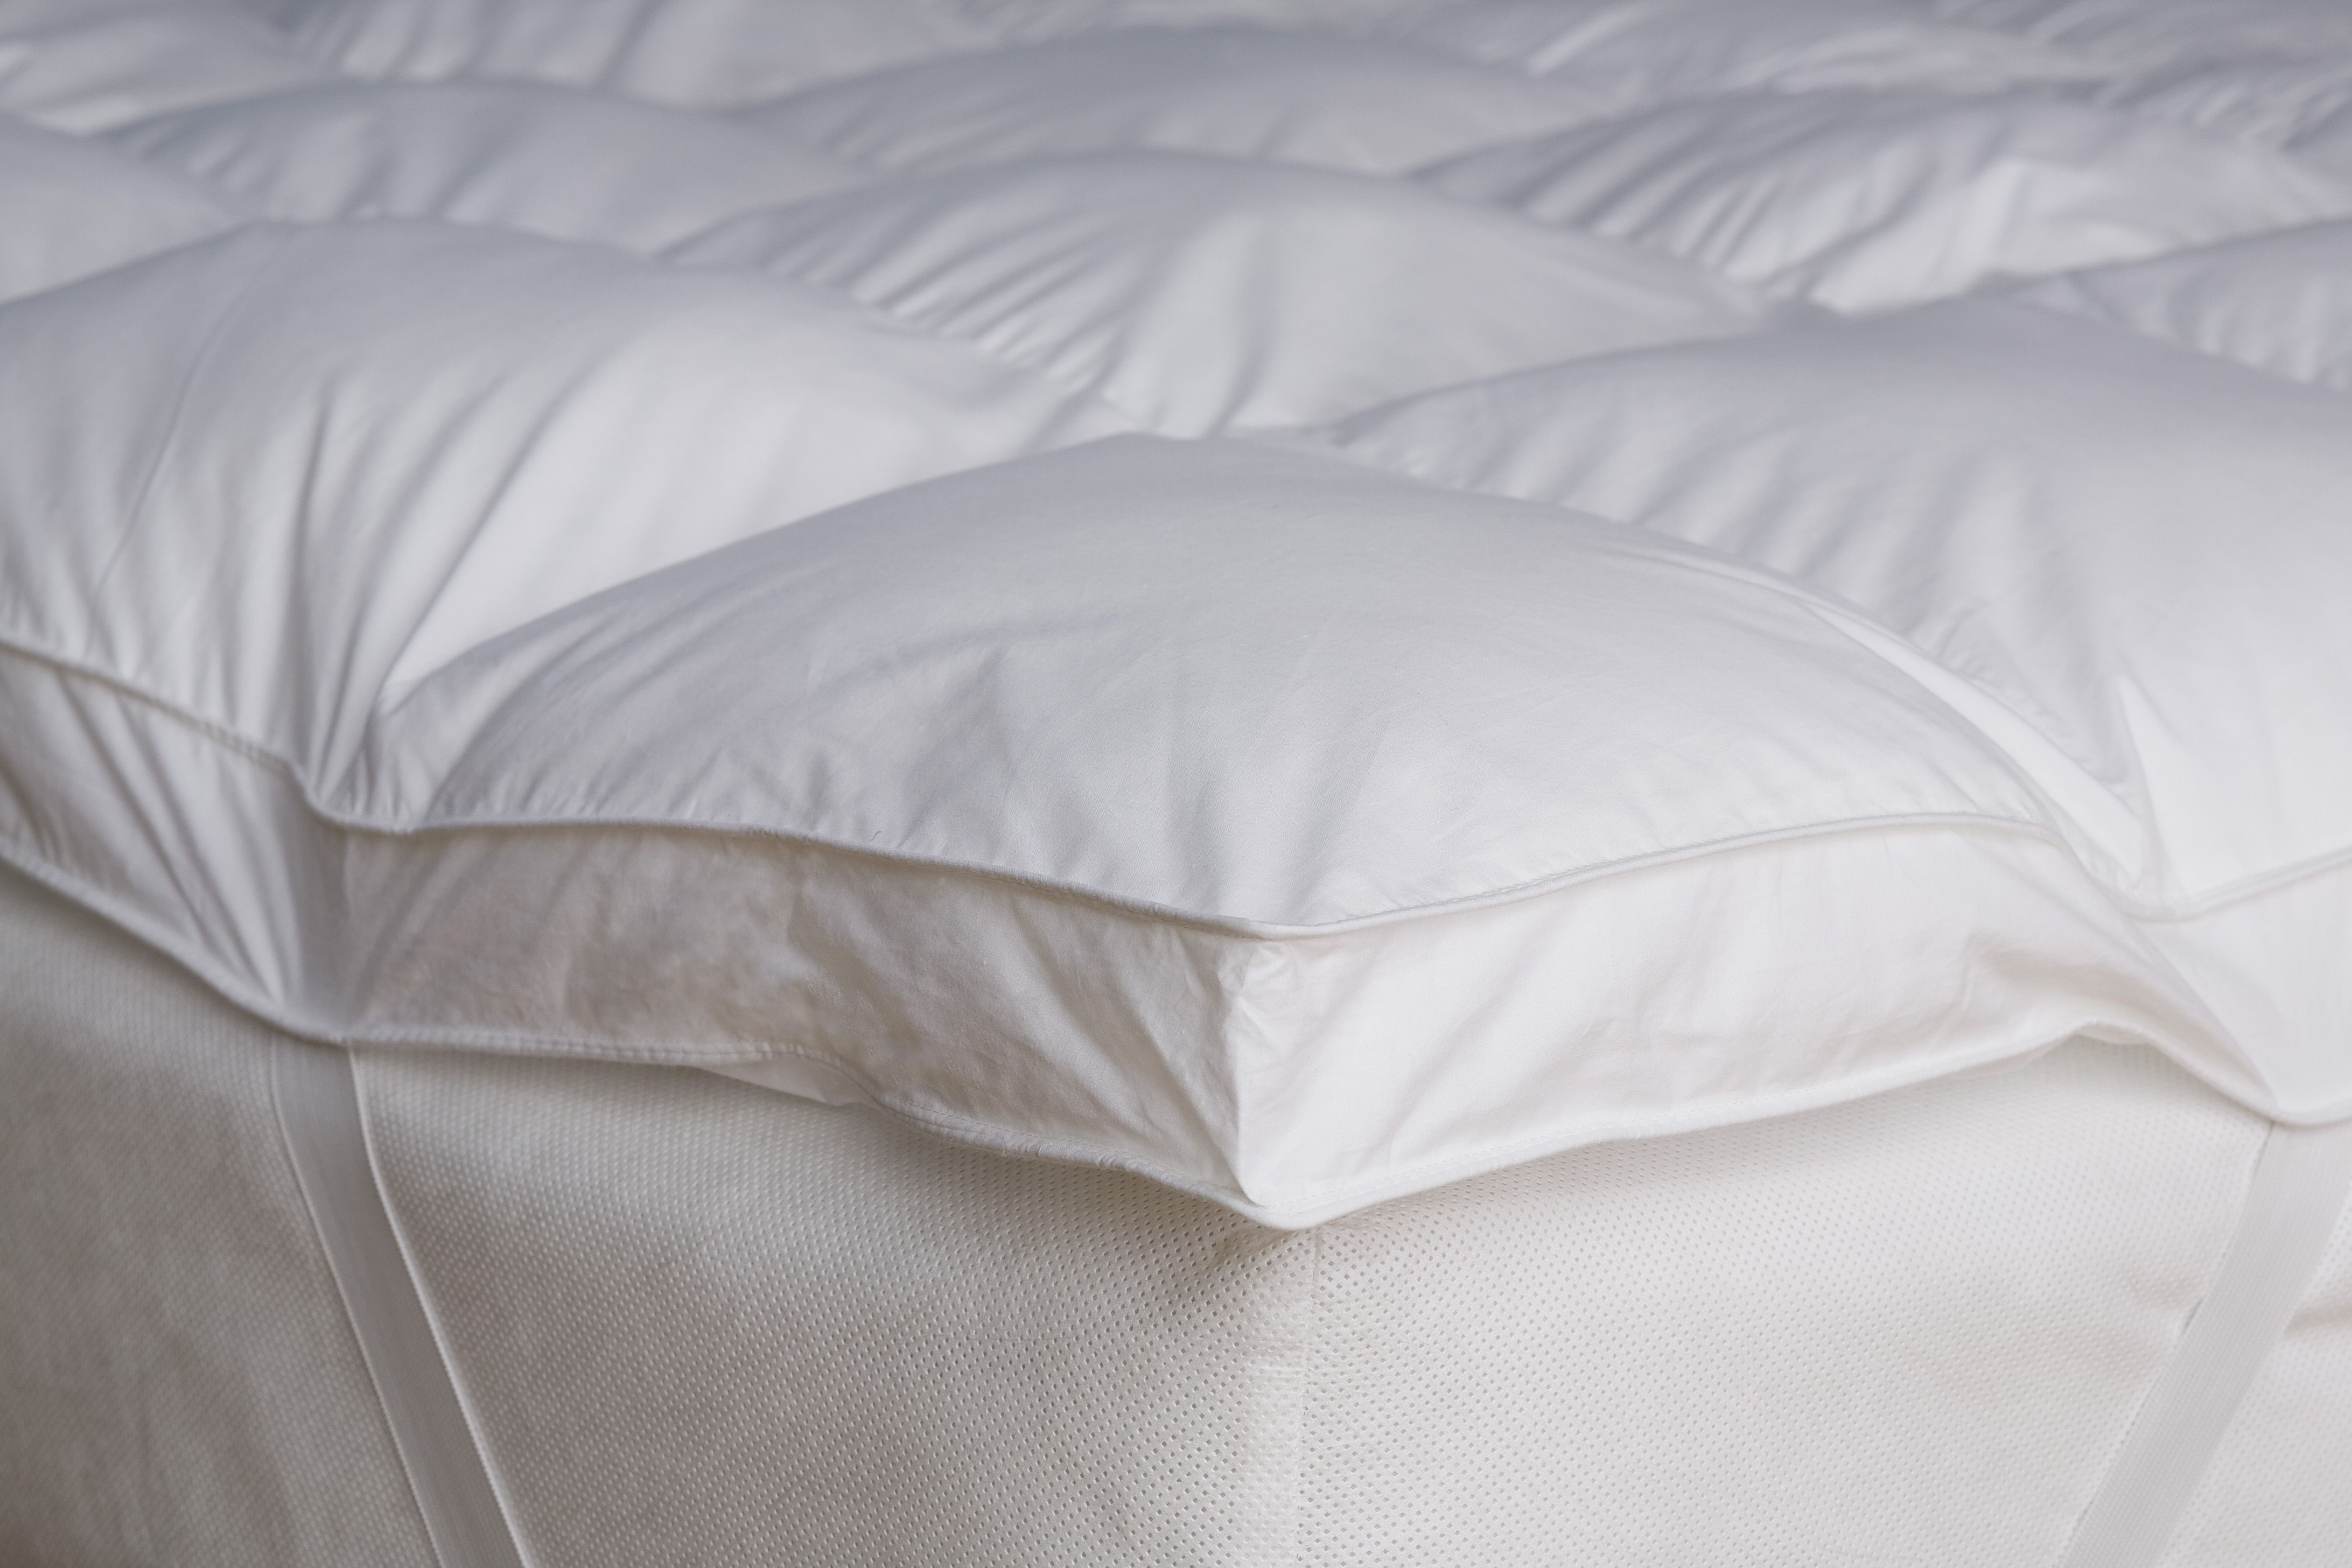 shipping bath inch gel product bedding mattress foam today slumber overstock memory fiber topper solutions free and